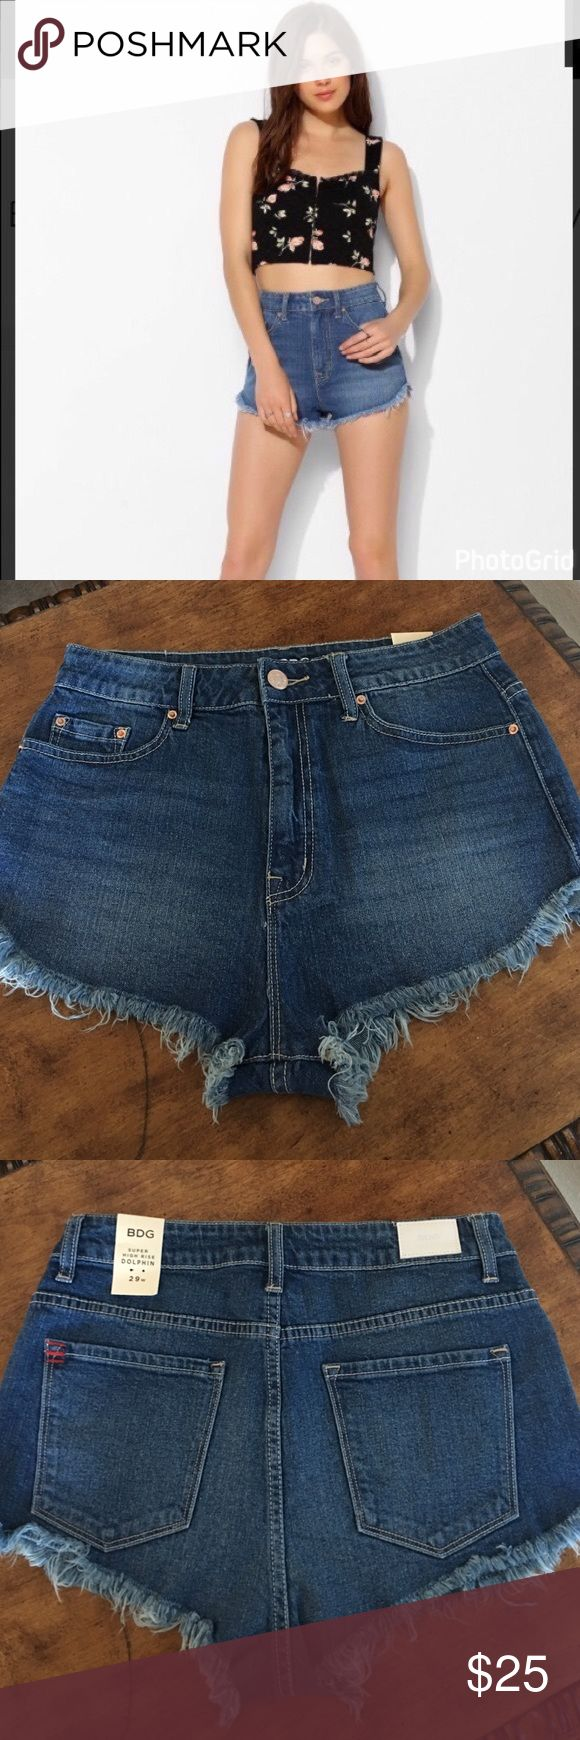 Urban Outfitters BDG Super High Rise Dolphin short NWT Urban Outfitters Shorts Jean Shorts